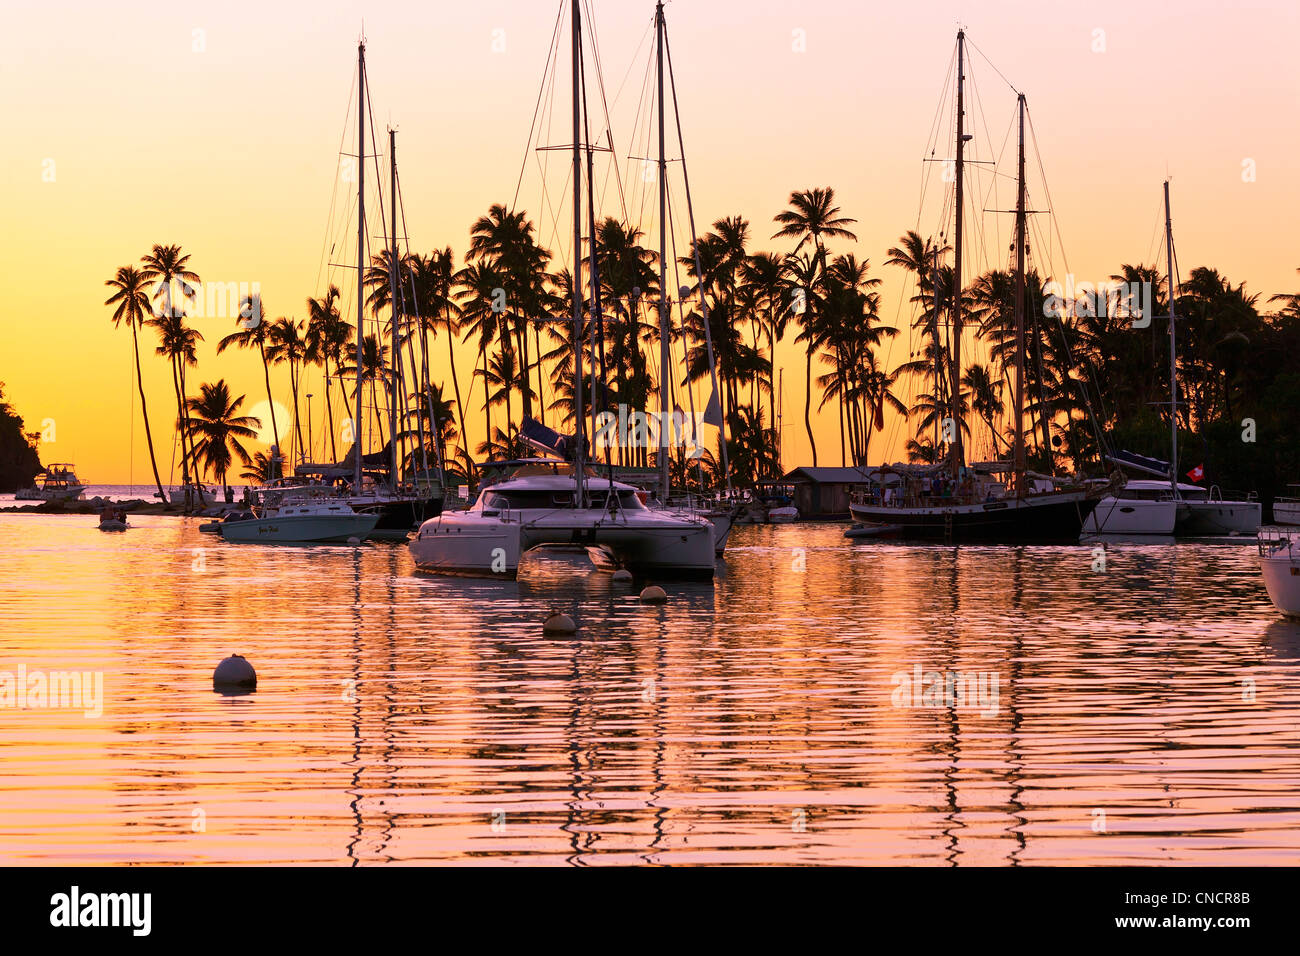 St. Lucia, Marigot Bay at Sunset - Stock Image